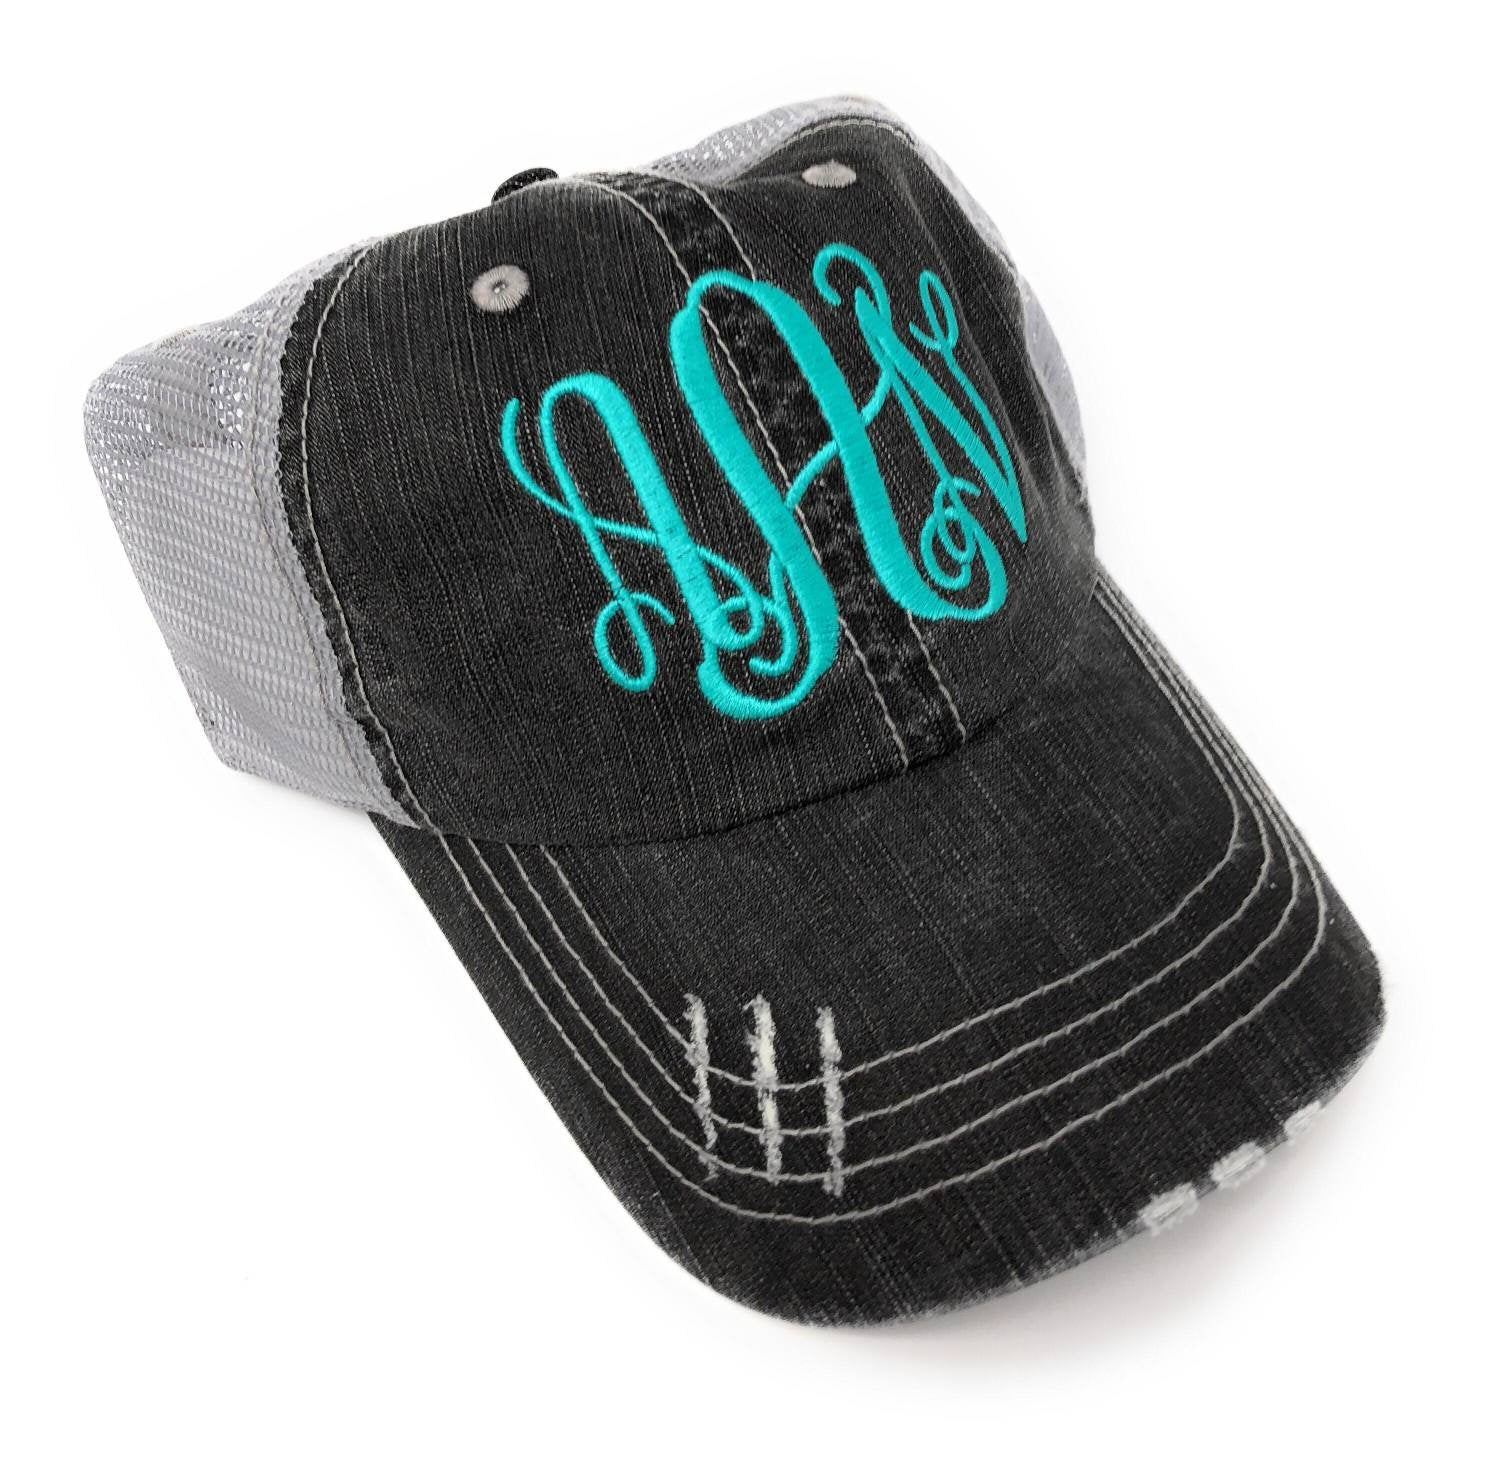 Monogrammed Trucker Hat - Embroidered Monogram, Personalized, Embroidery, Black and Grey Distressed Trucker Hats, Mesh, Torn Baseball Caps